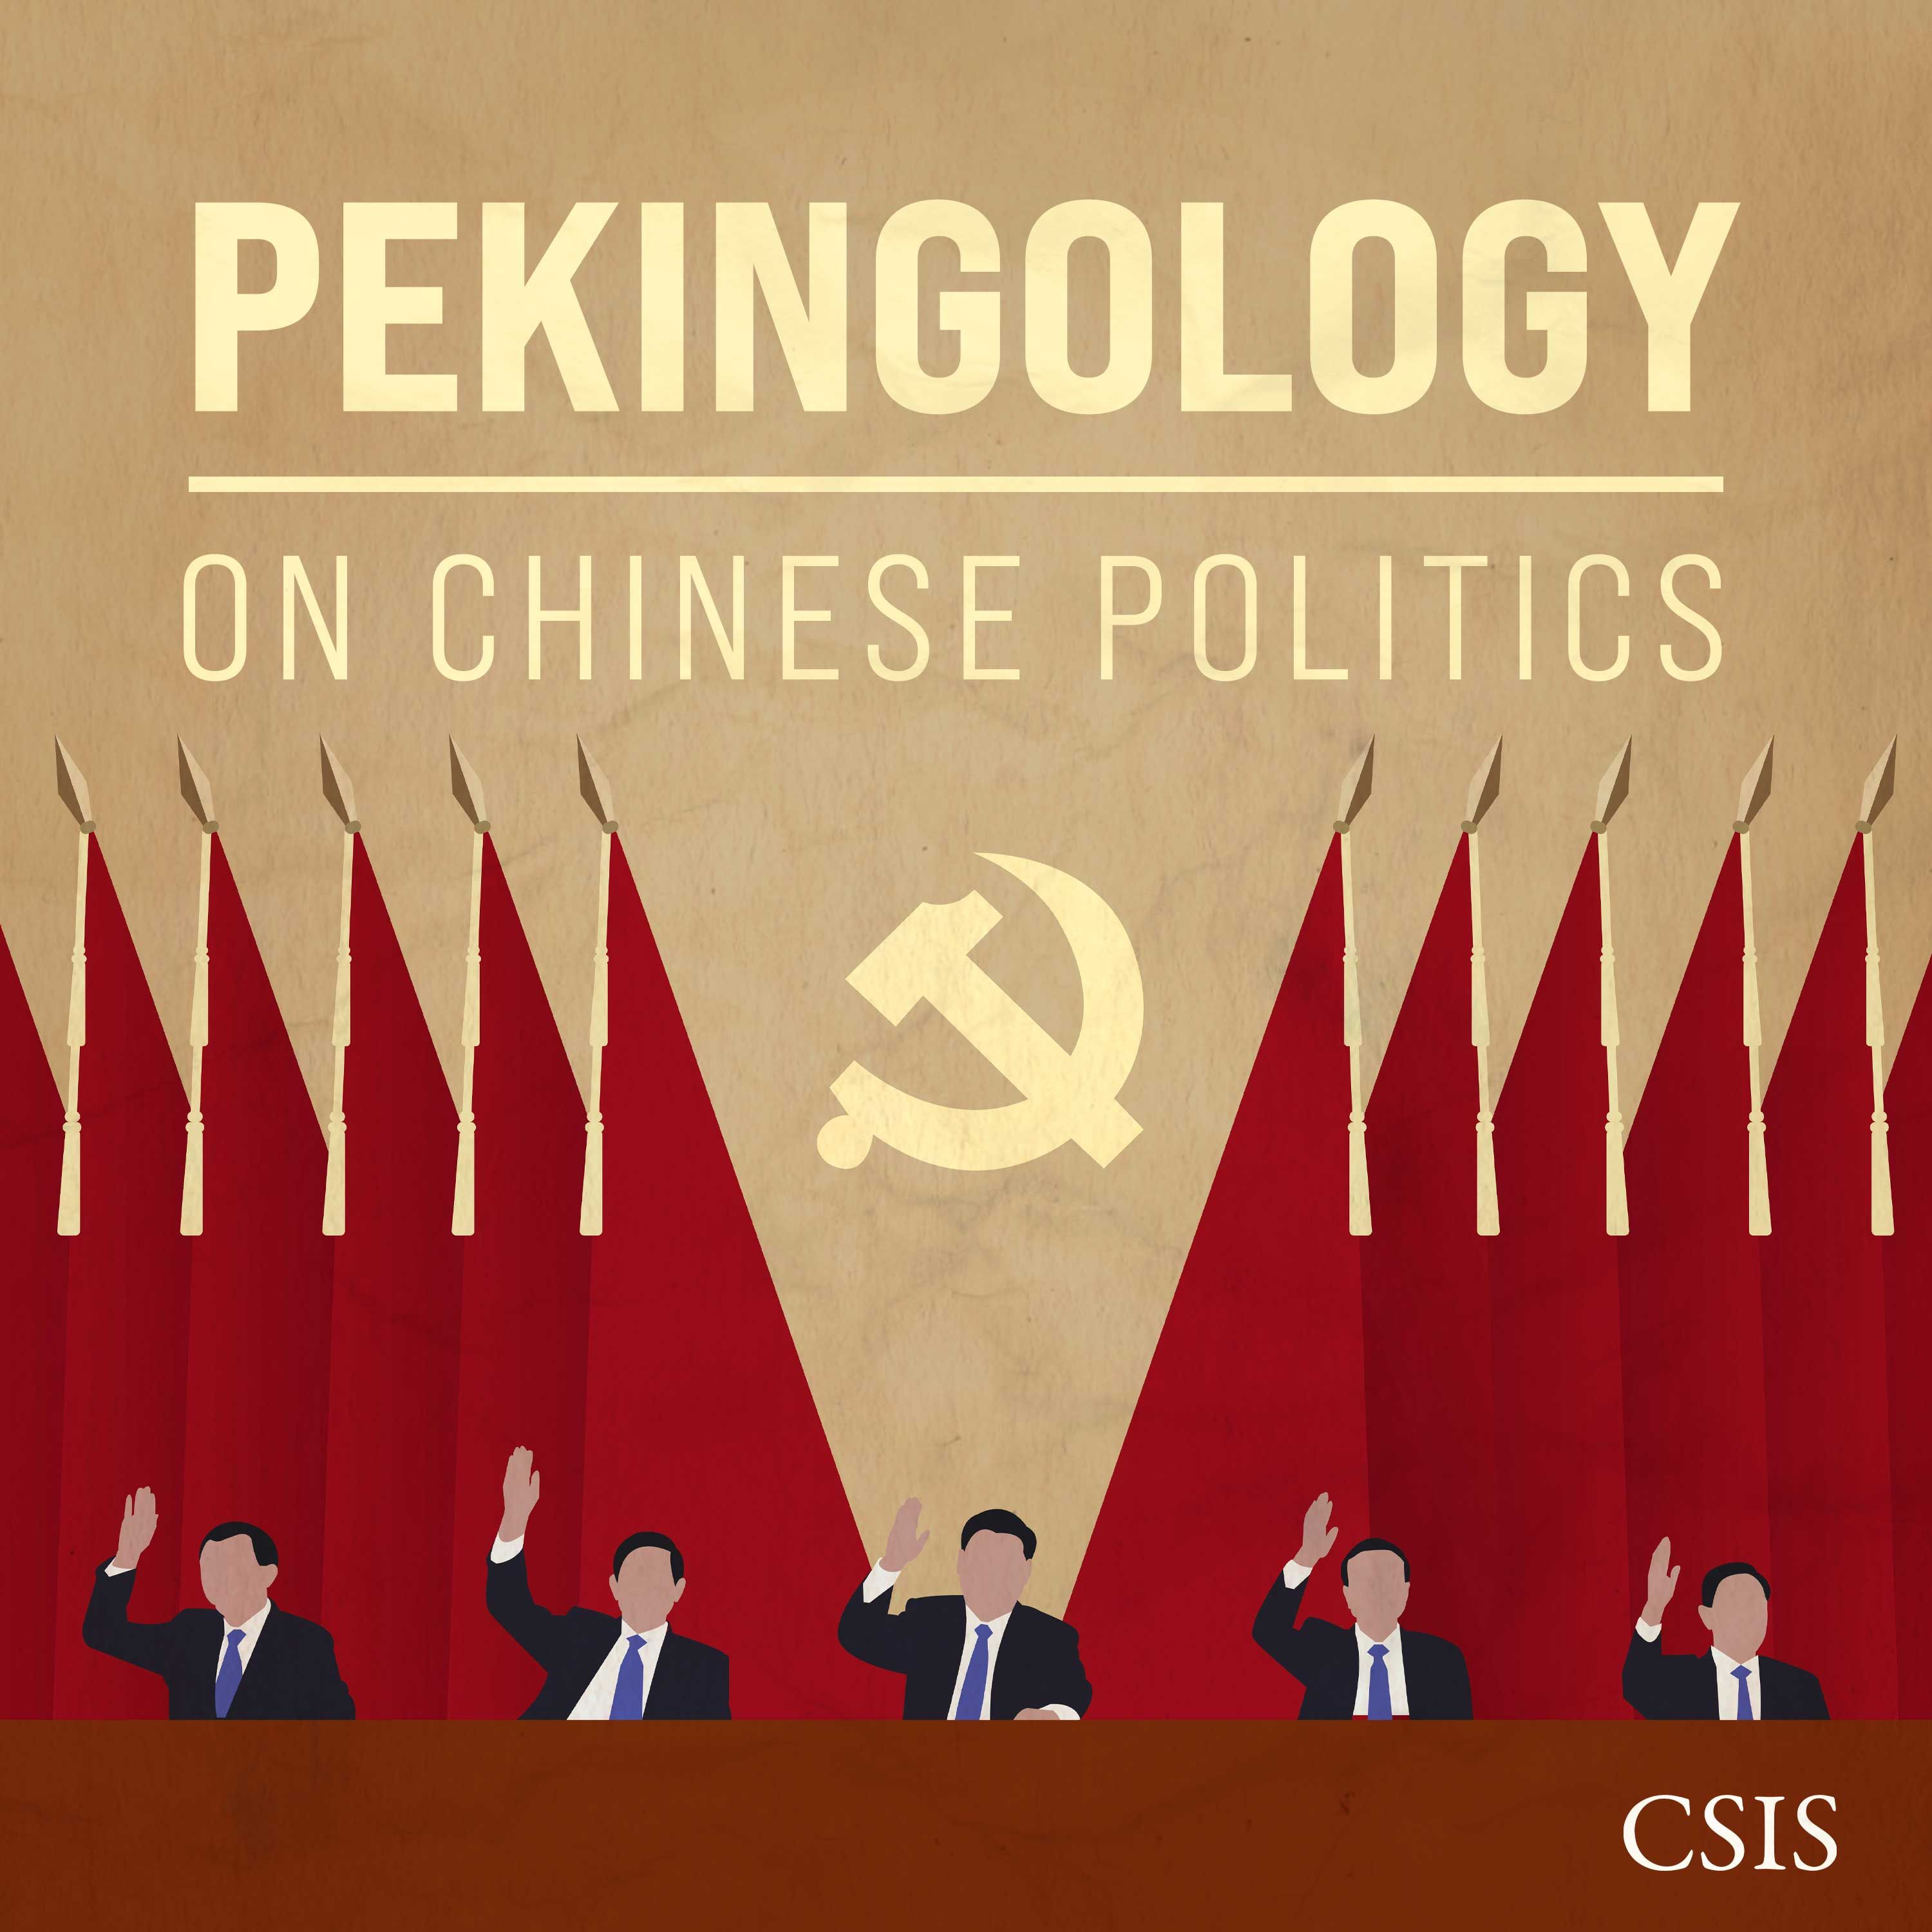 Does Xi Jinping Face a Coup Threat?